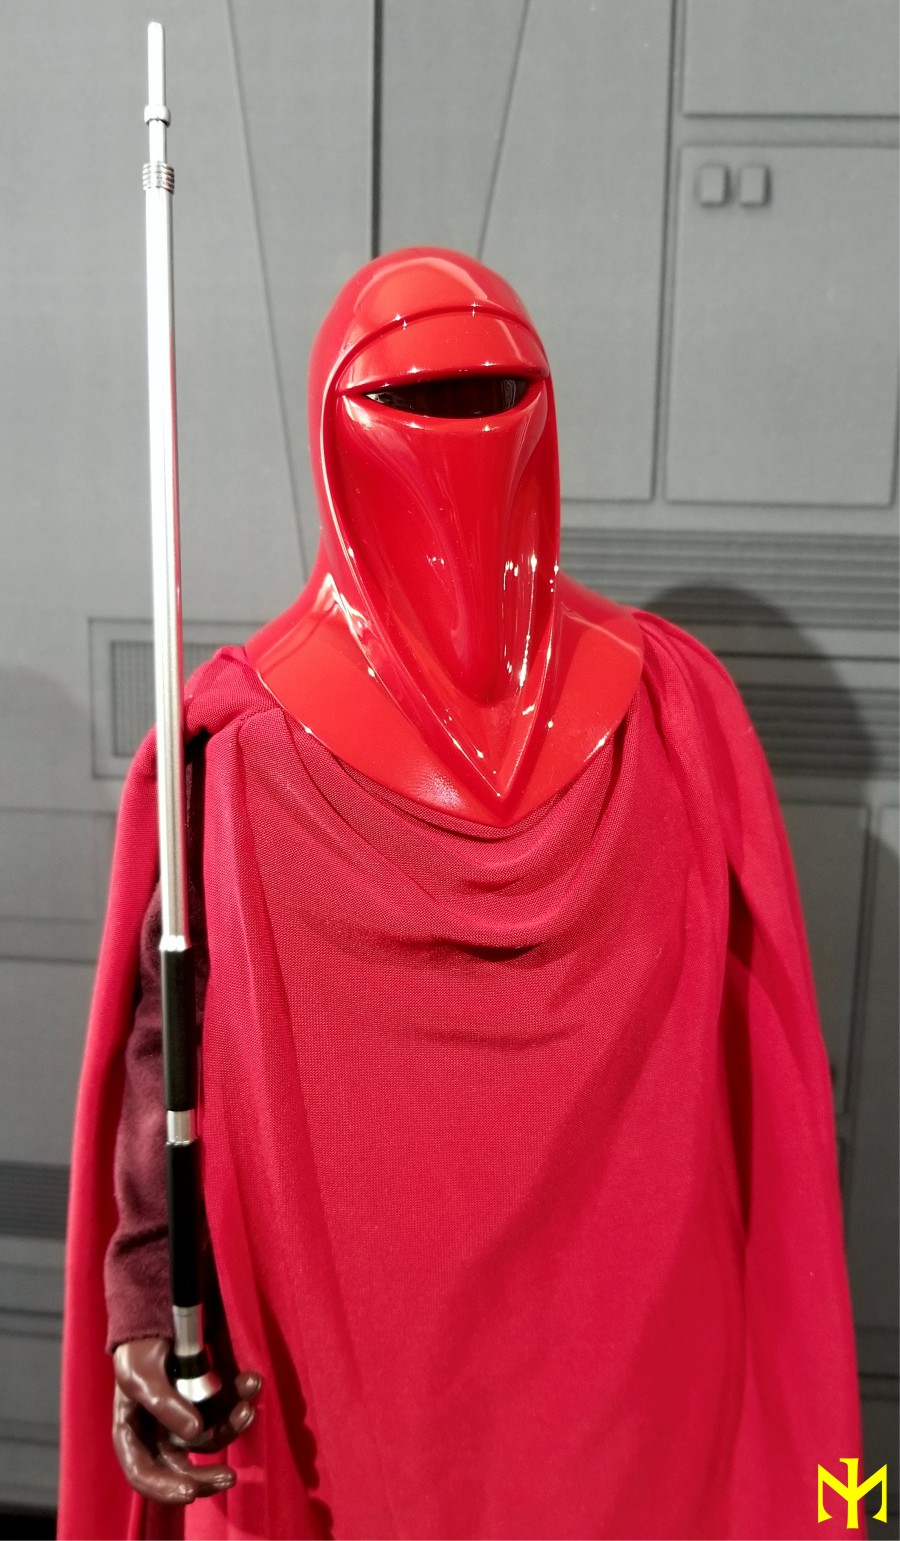 returnofthejedi - Hot Toys Star Wars Royal Guard Review Htrg0410